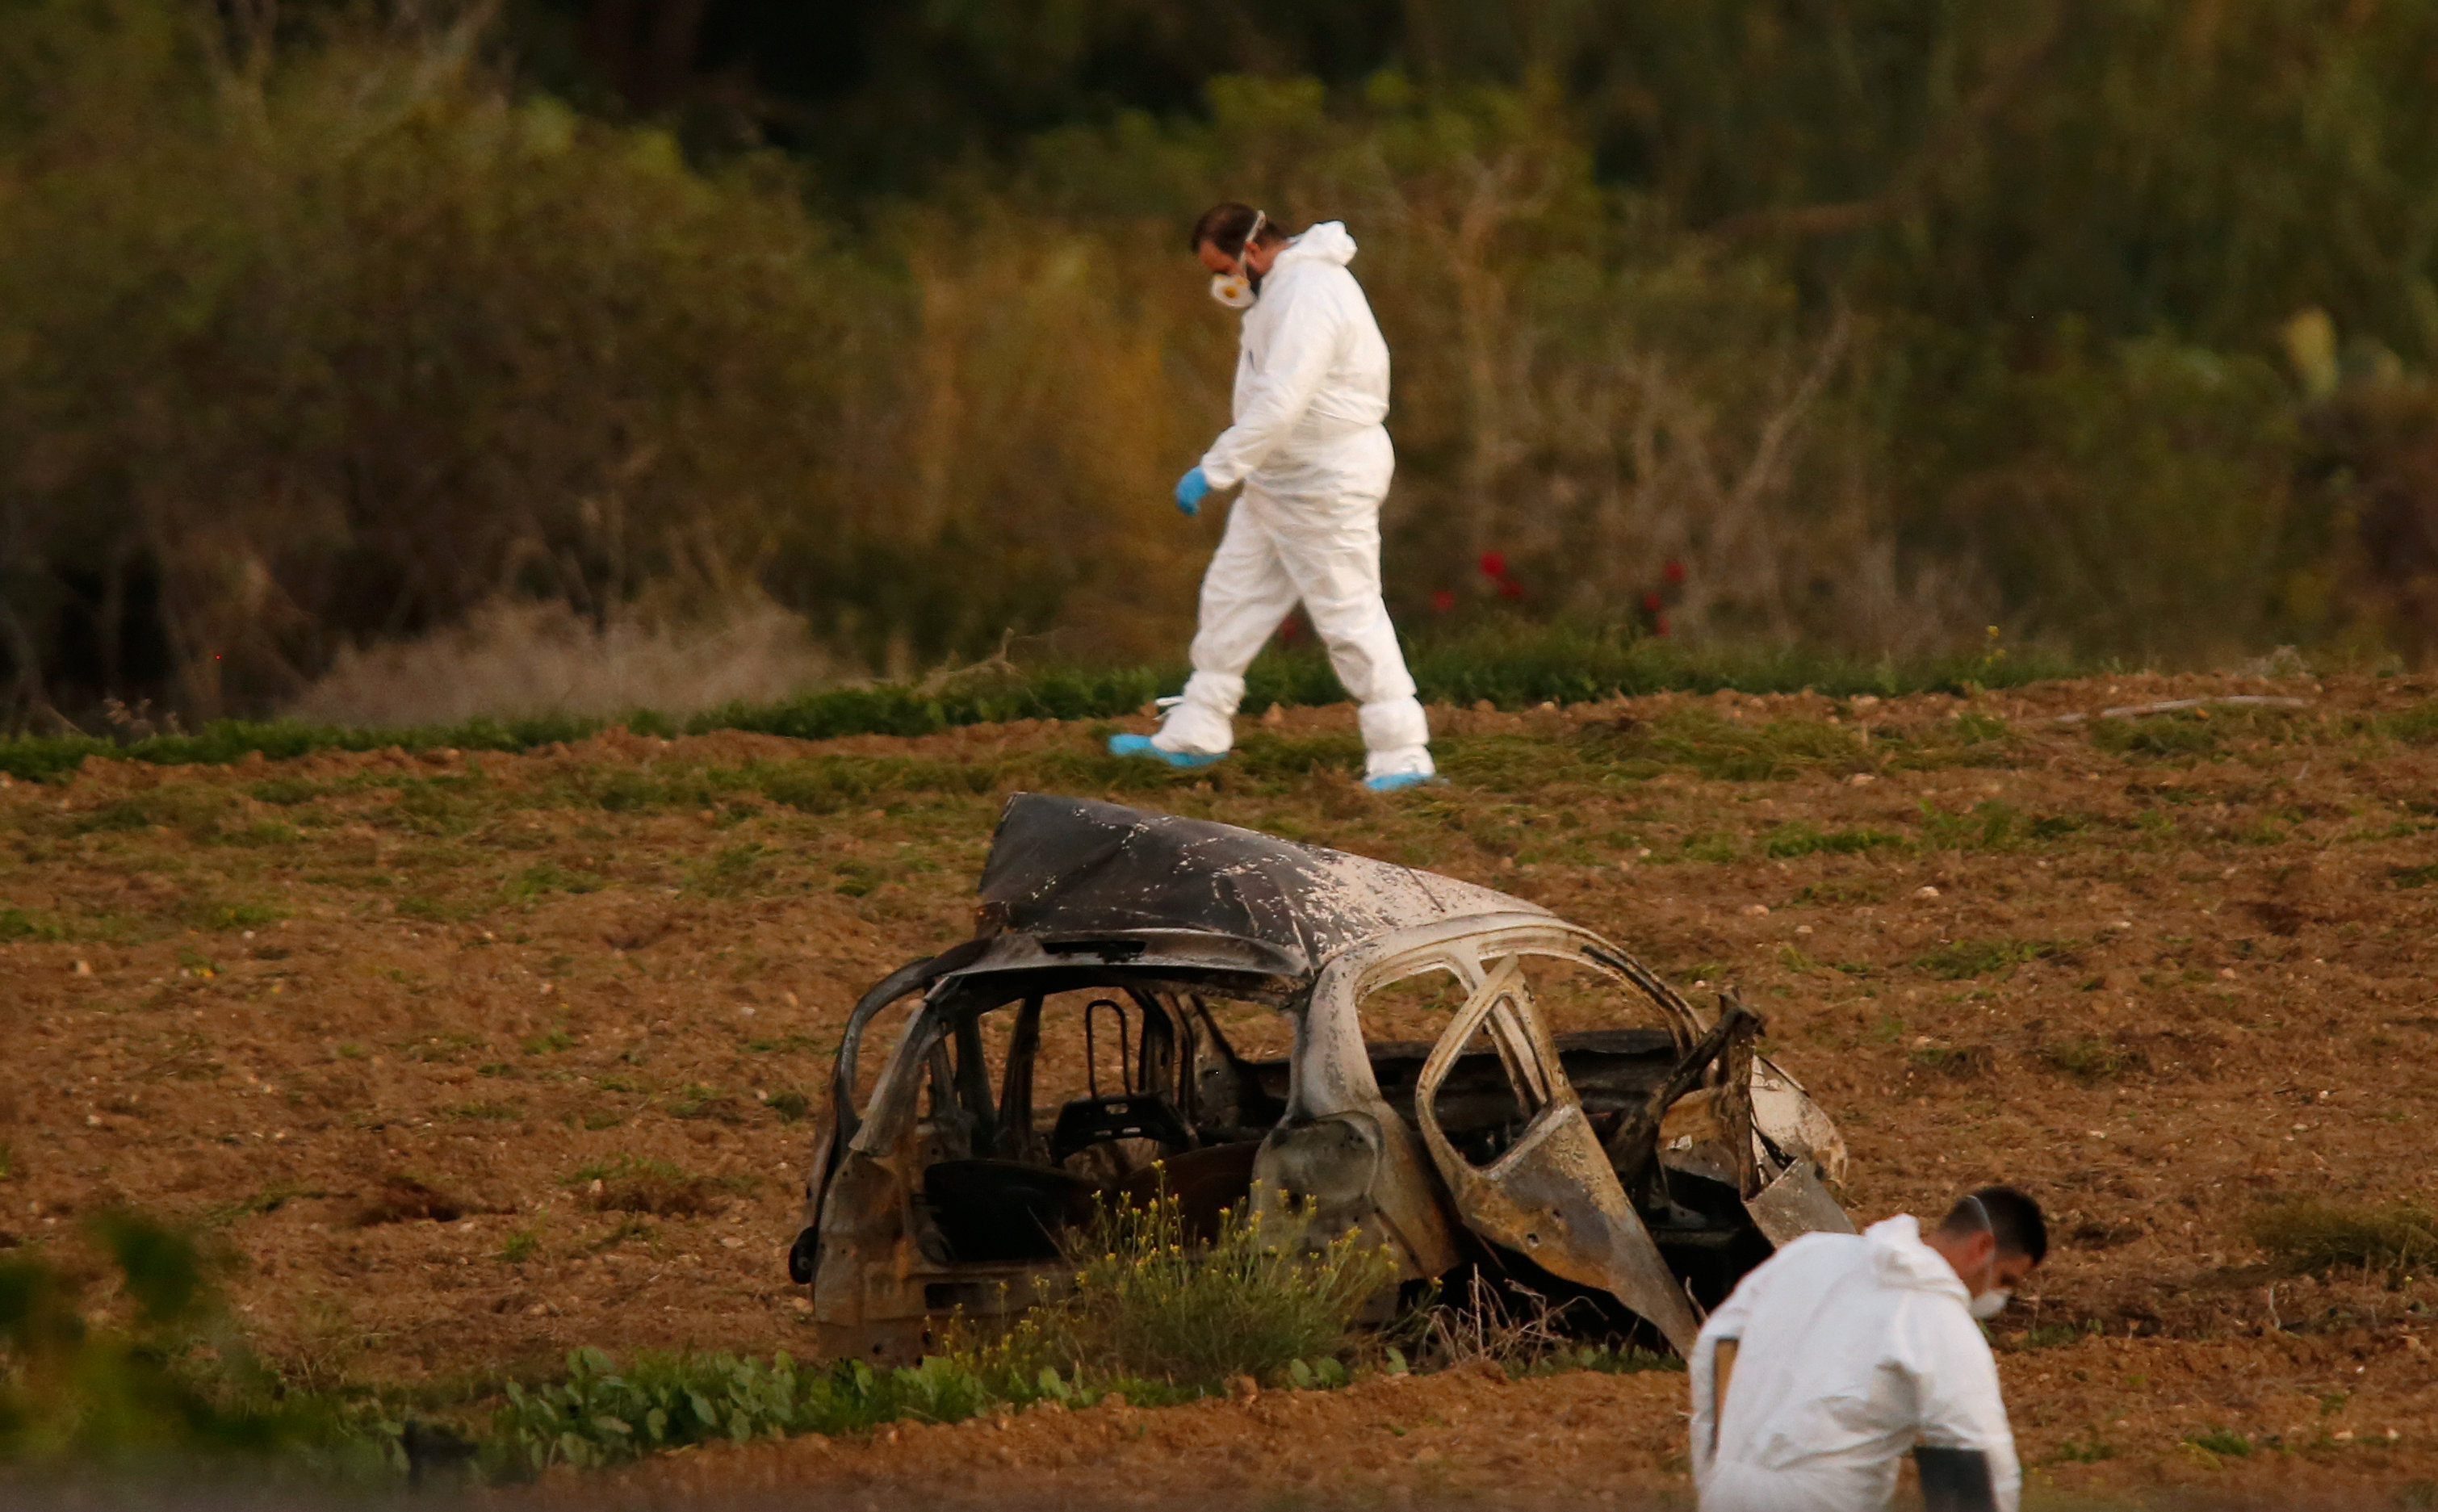 Forensic experts walk in a field after a powerful bomb blew up a car (Foreground) and killed investigative journalist Daphne Caruana Galizia in Bidnija, Malta, October 16, 2017. Credit: Reuters/Darrin Zammit Lupi